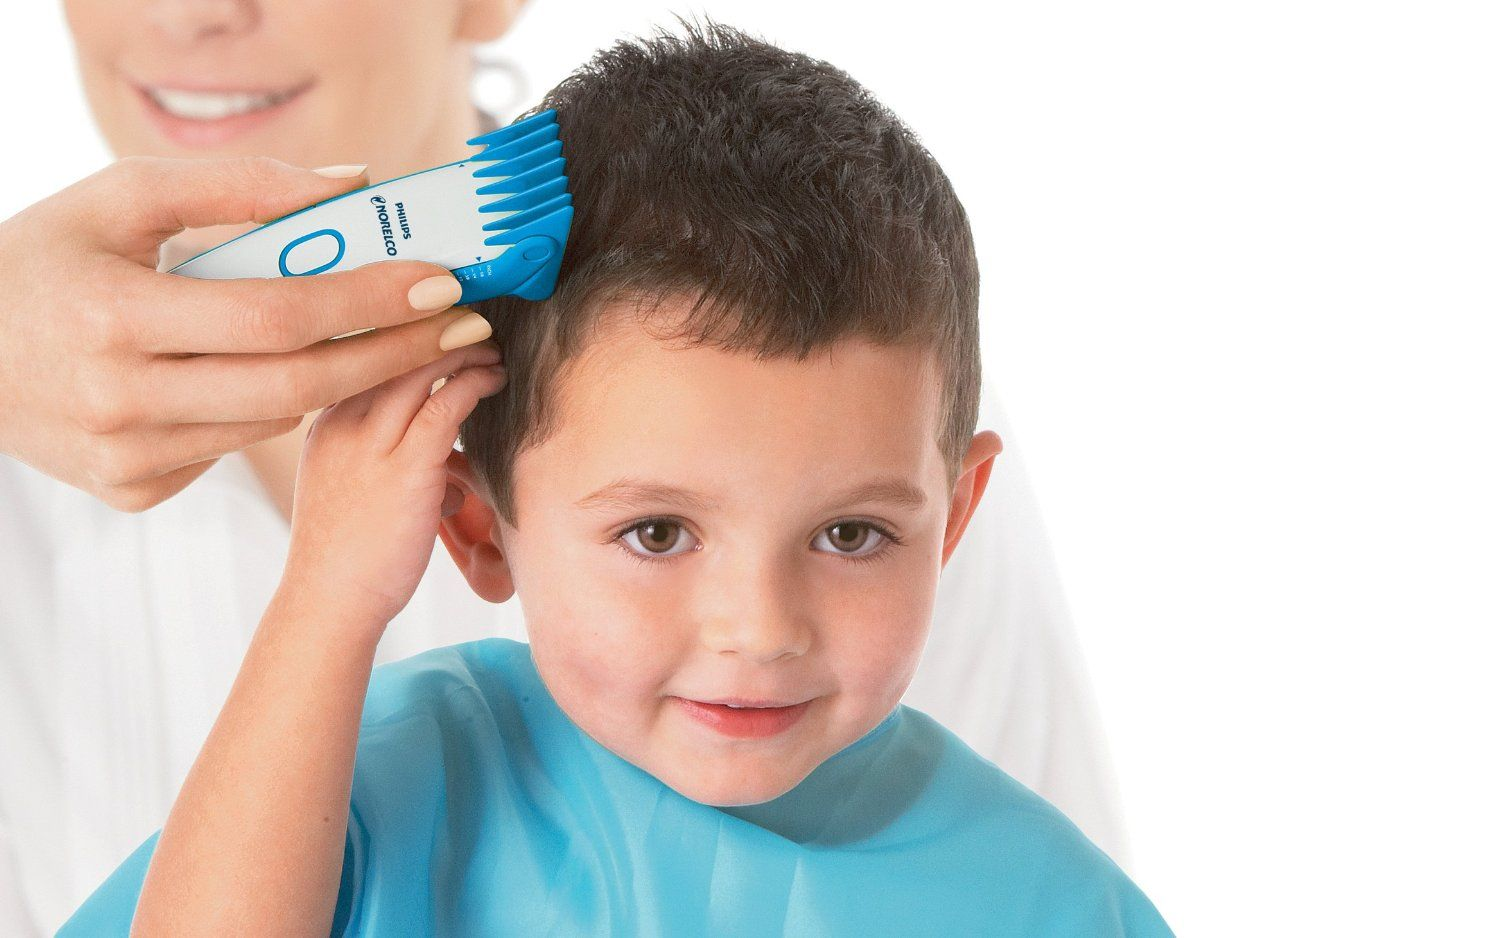 baby hair clippers